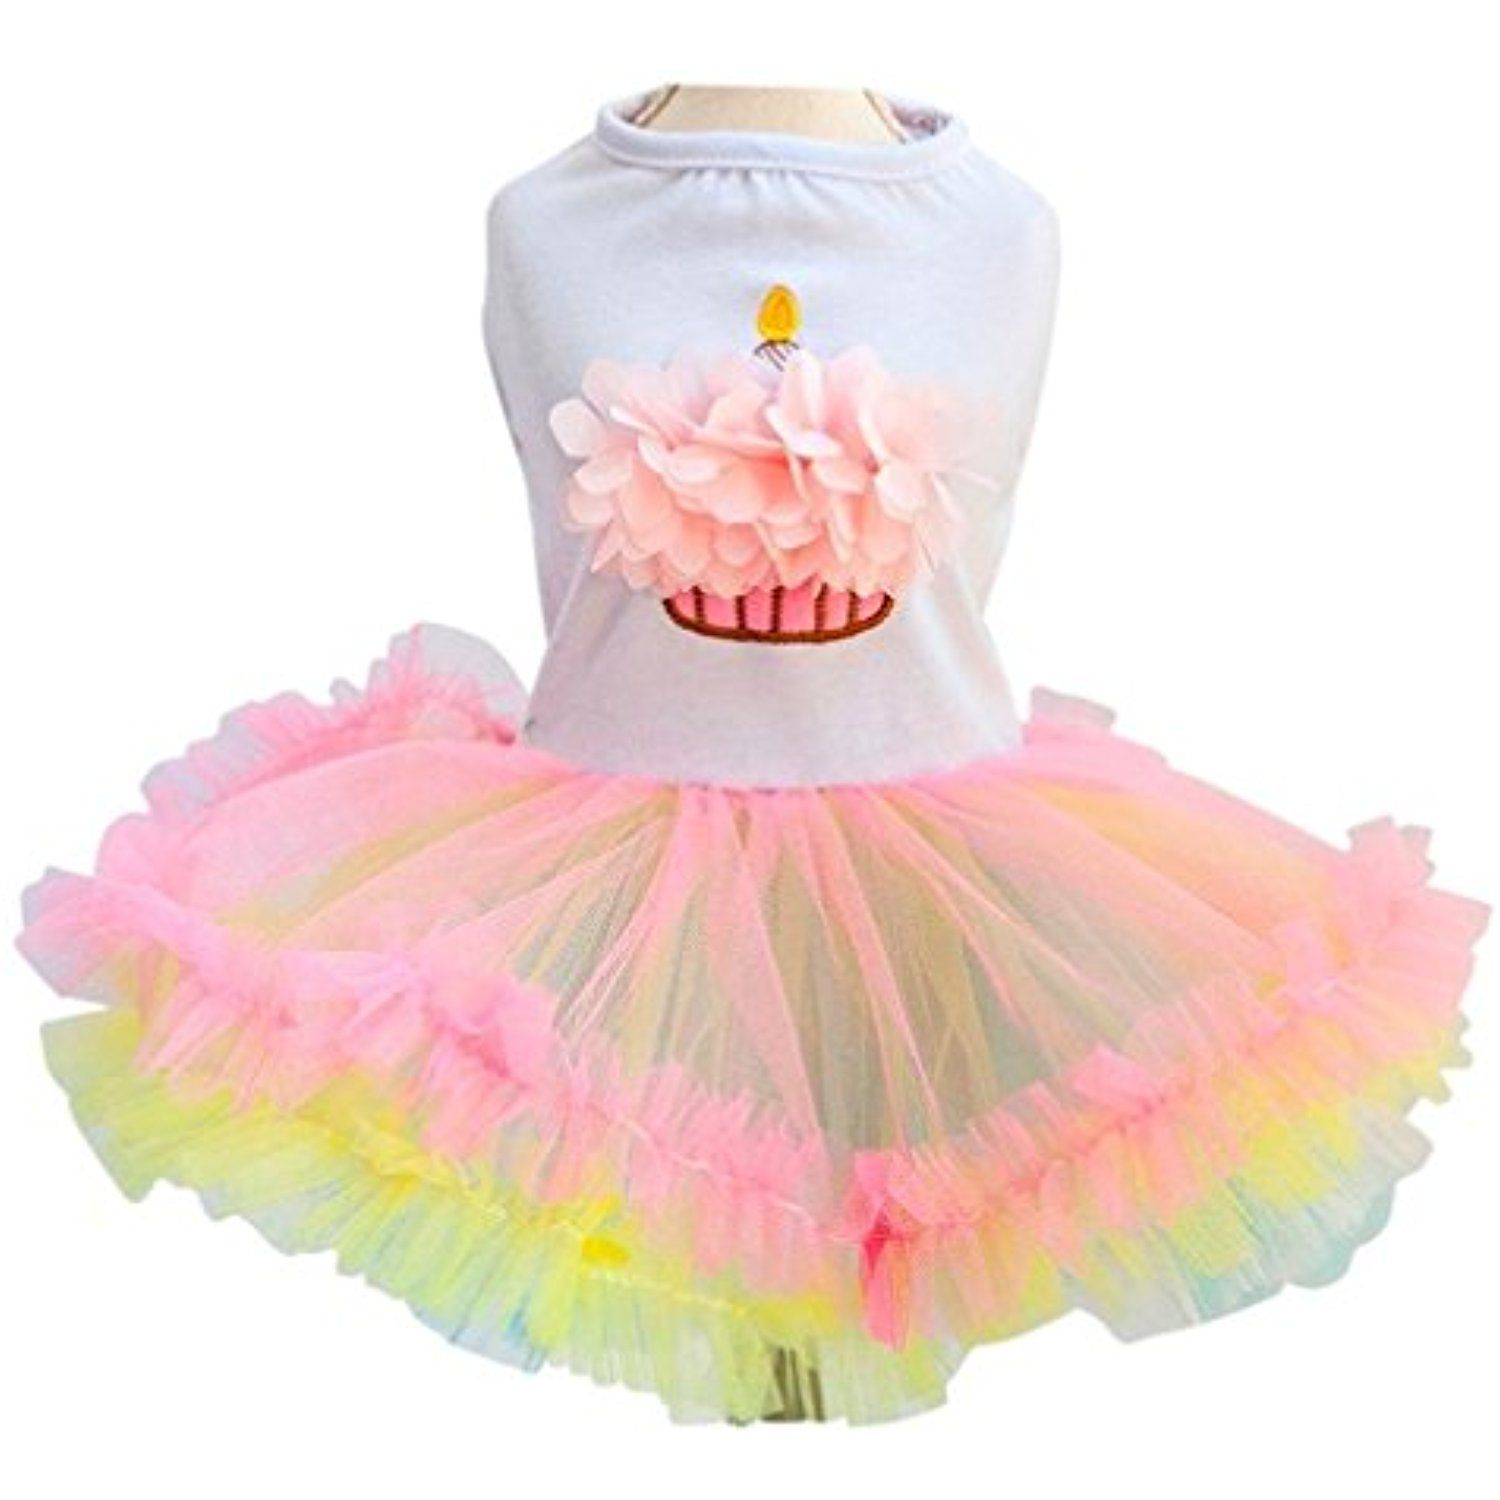 Ollypet Cute Dog Birthday Dress for Girls Dogs Clothes Cupcake Tutu Apparel Small Cats Puppy Yorkie Medium >>> You can get additional details at the image link. (This is an affiliate link) #ApparelAccessories